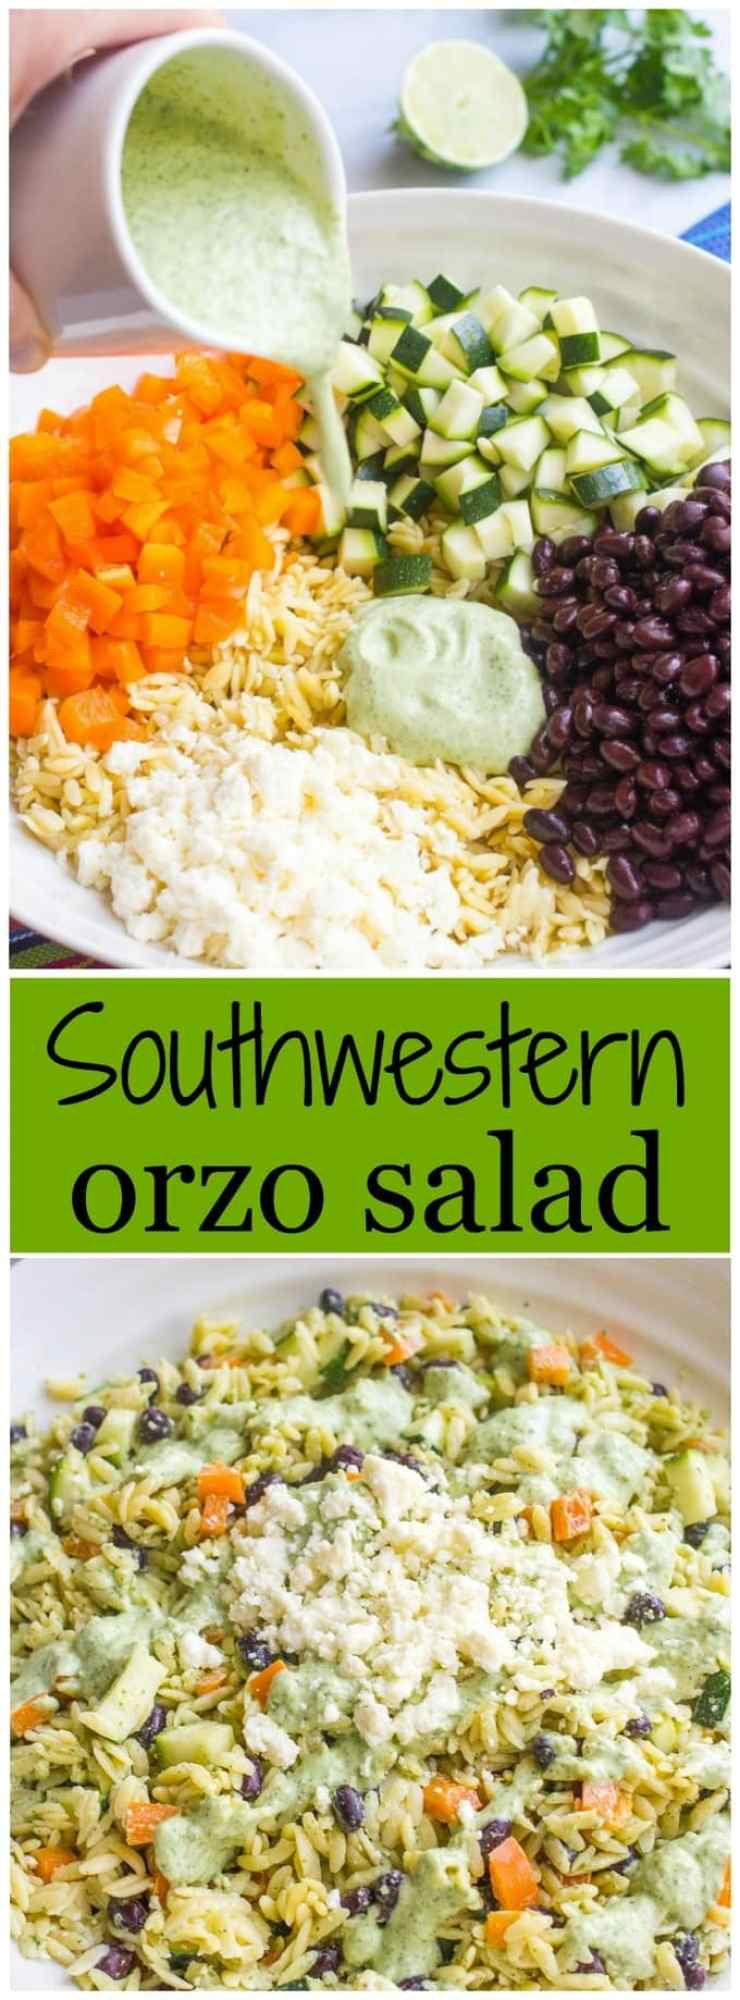 cool, creamy southwestern orzo salad with black beans, veggies ...